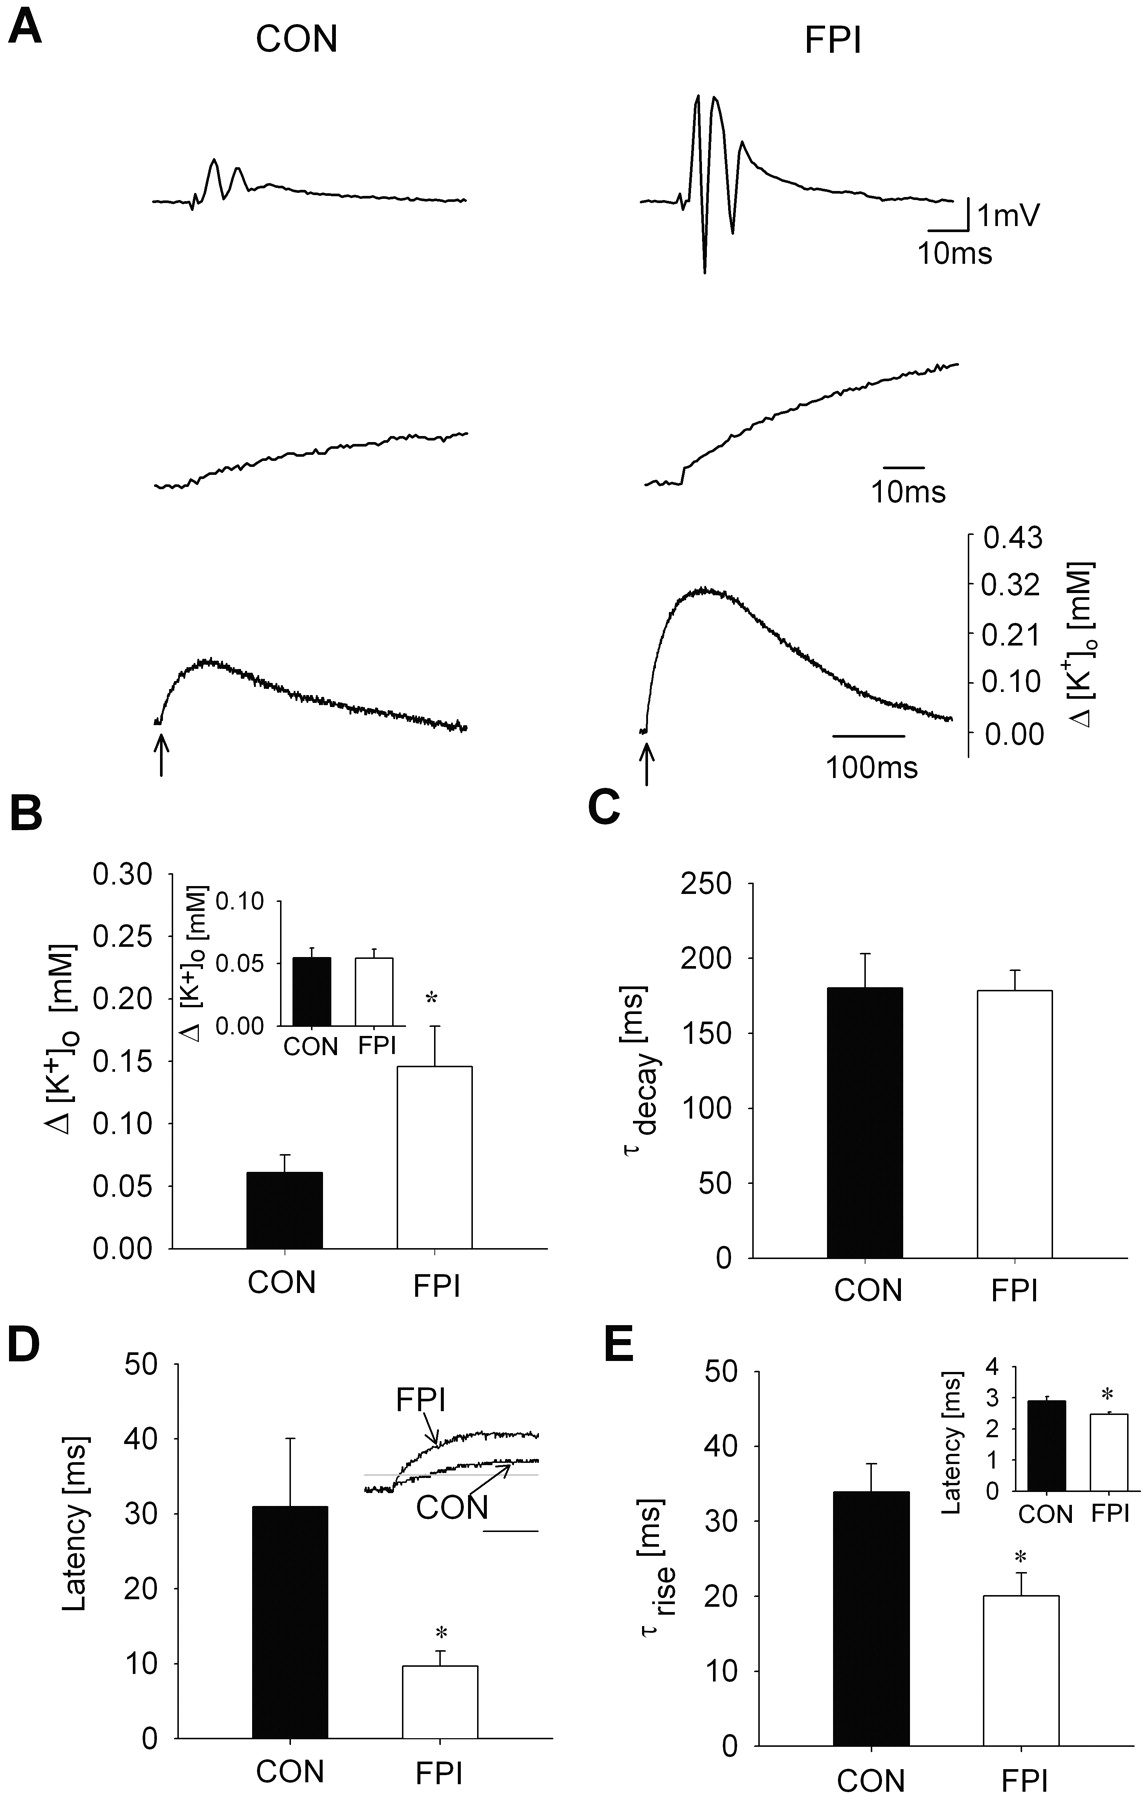 Post-Traumatic Hyperexcitability Is Not Caused by Impaired